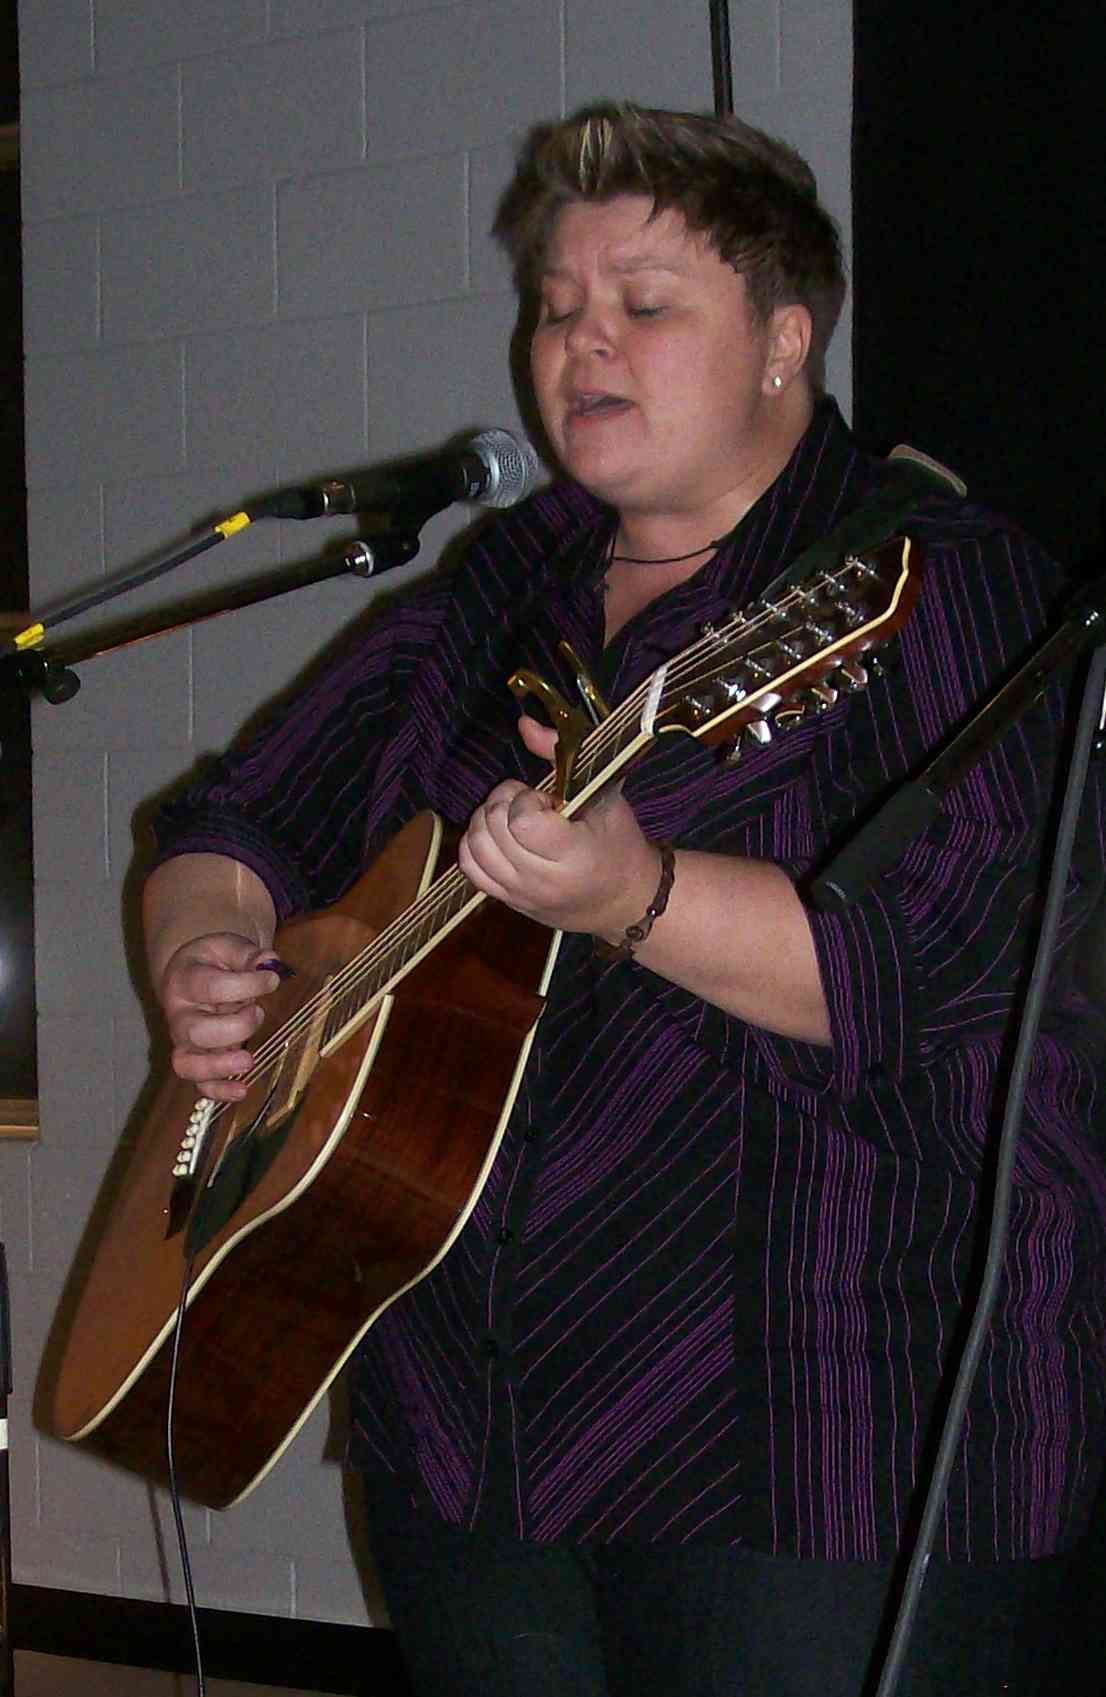 Tina Dionne at BWFC January 16, 2009